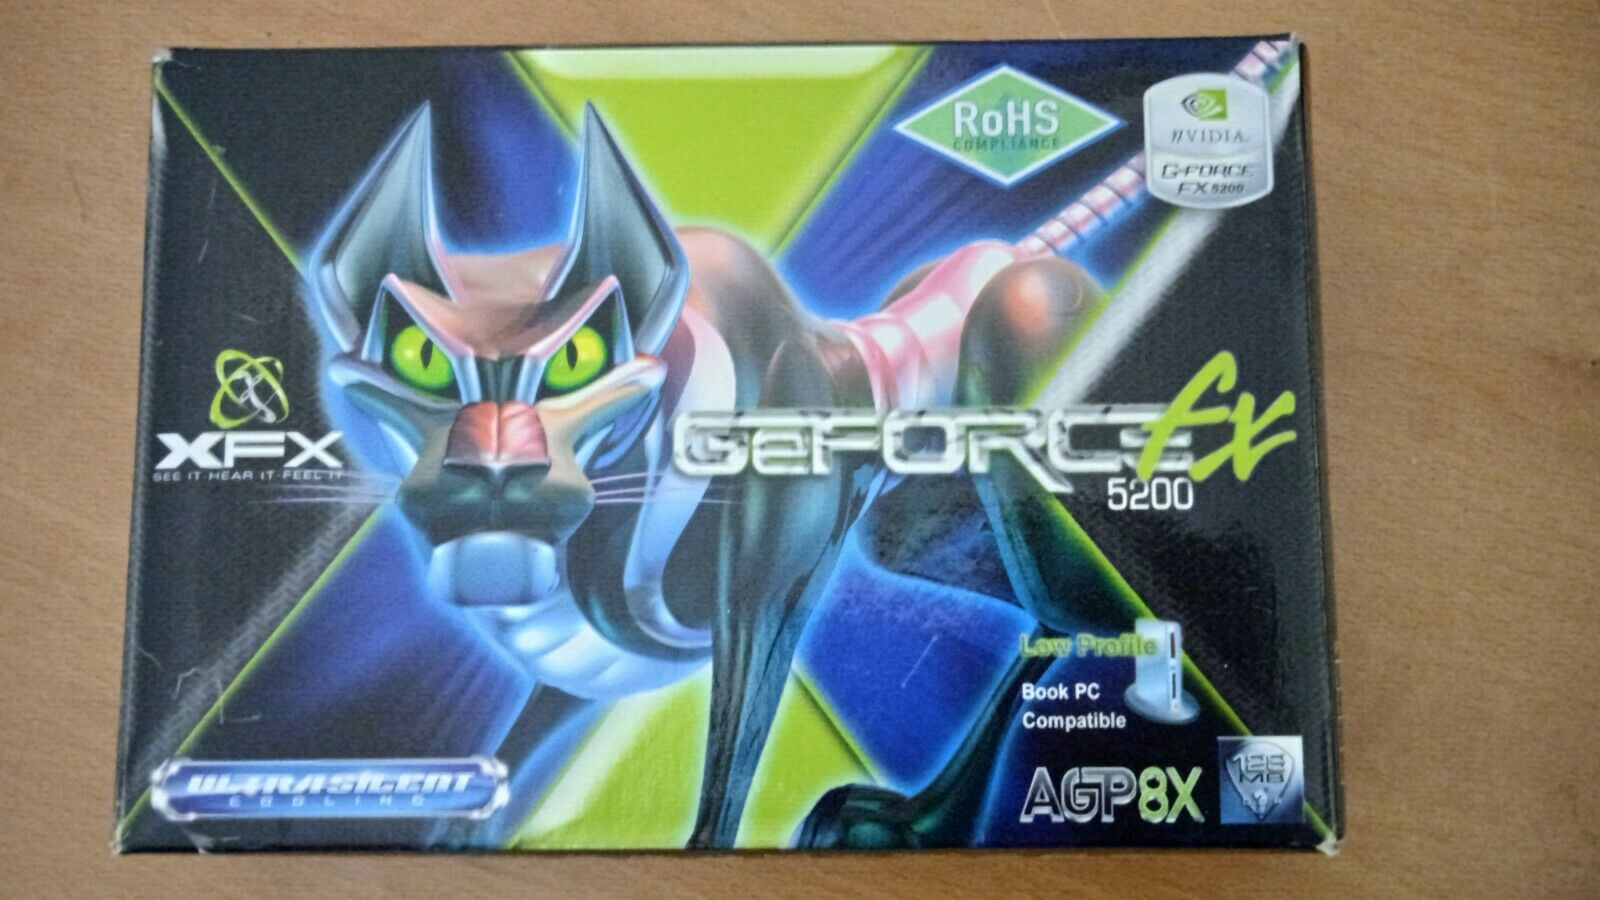 Pine Technology XFX GeForce FX 5200 (128 MB) (PV-T34K-NTHG) Graphics Card